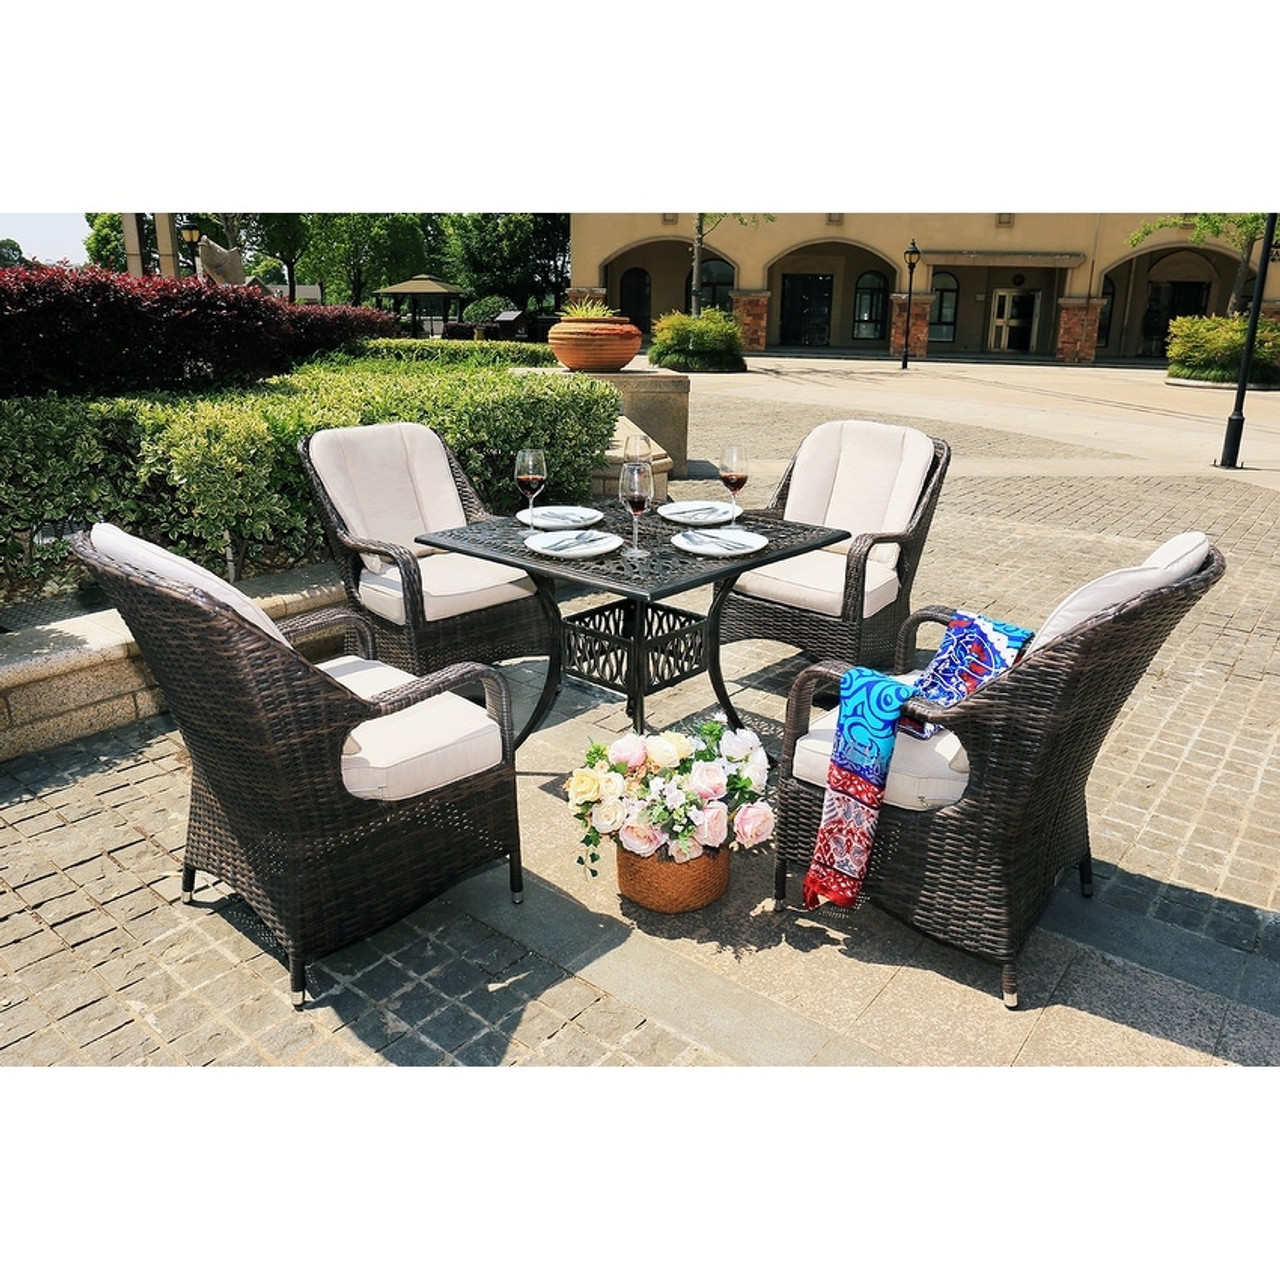 5 Piece Alum Casting Outdoor Patio Dining Set Rattan Chairs Direct Wicker